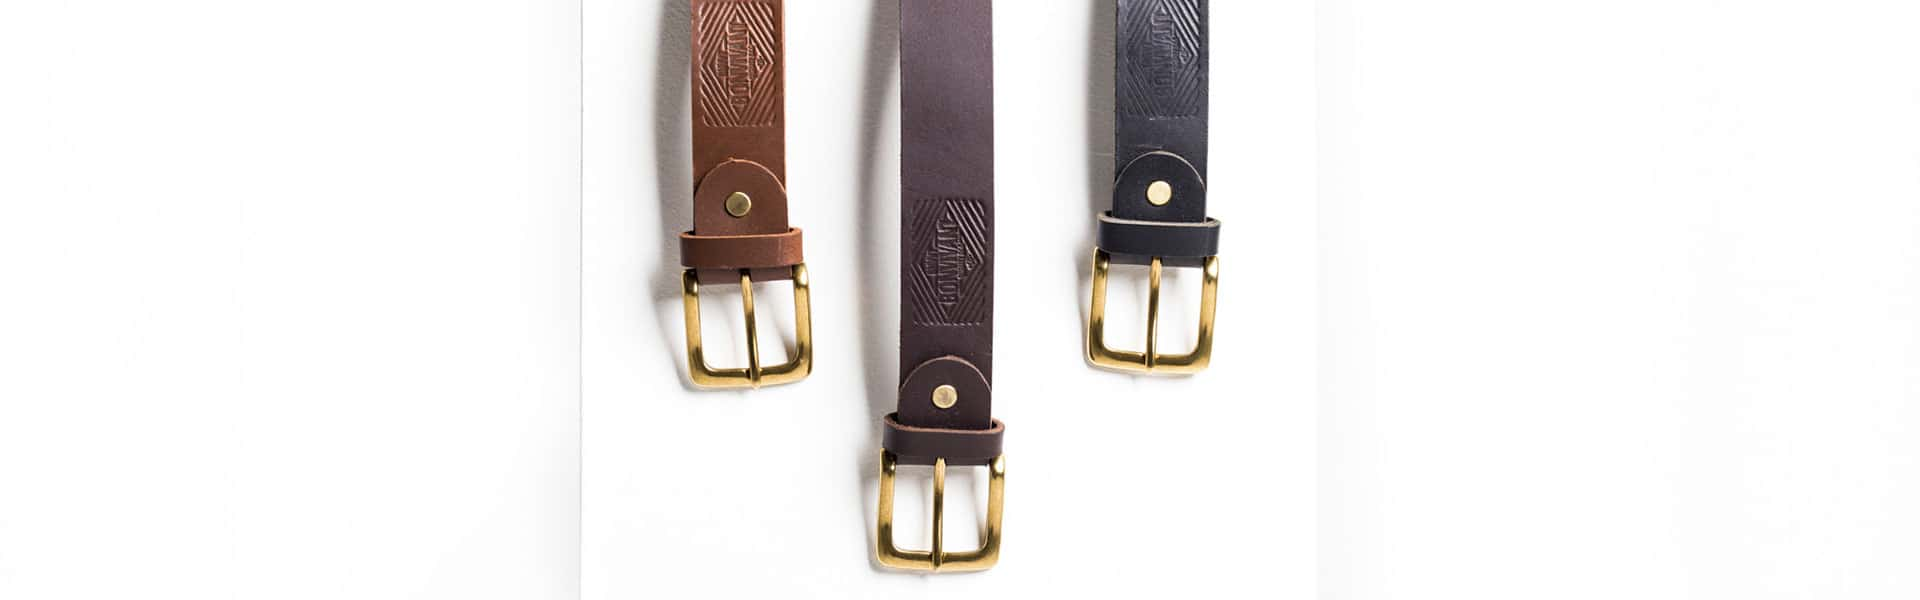 Best Belt For Women 2019 – Buying Guide and Belt Reviews